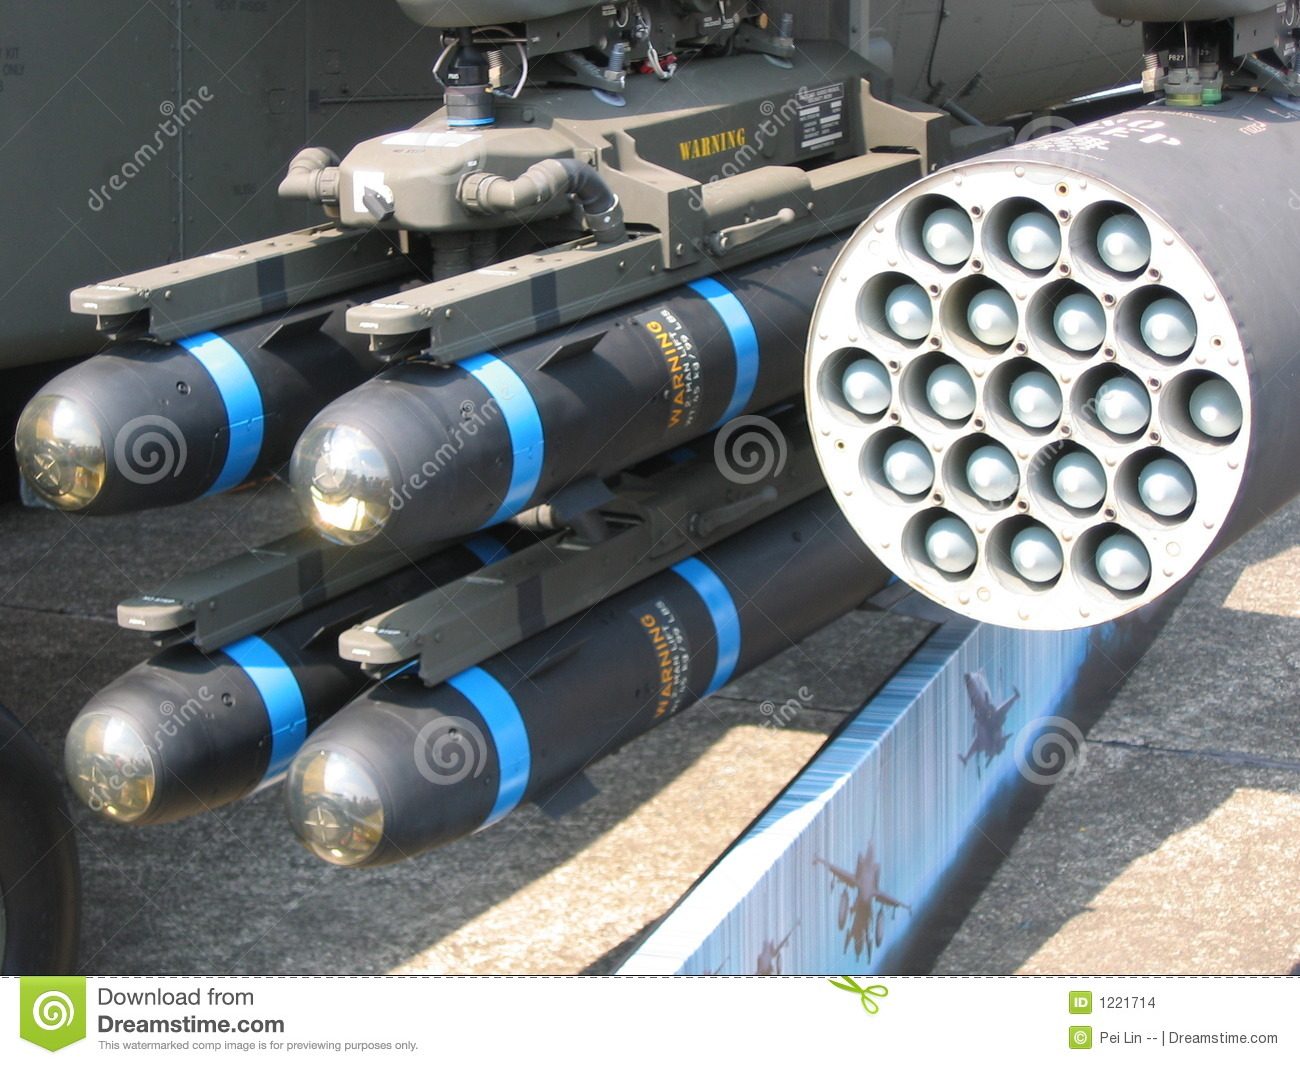 Missiles - armes de destruction massive (wmd)